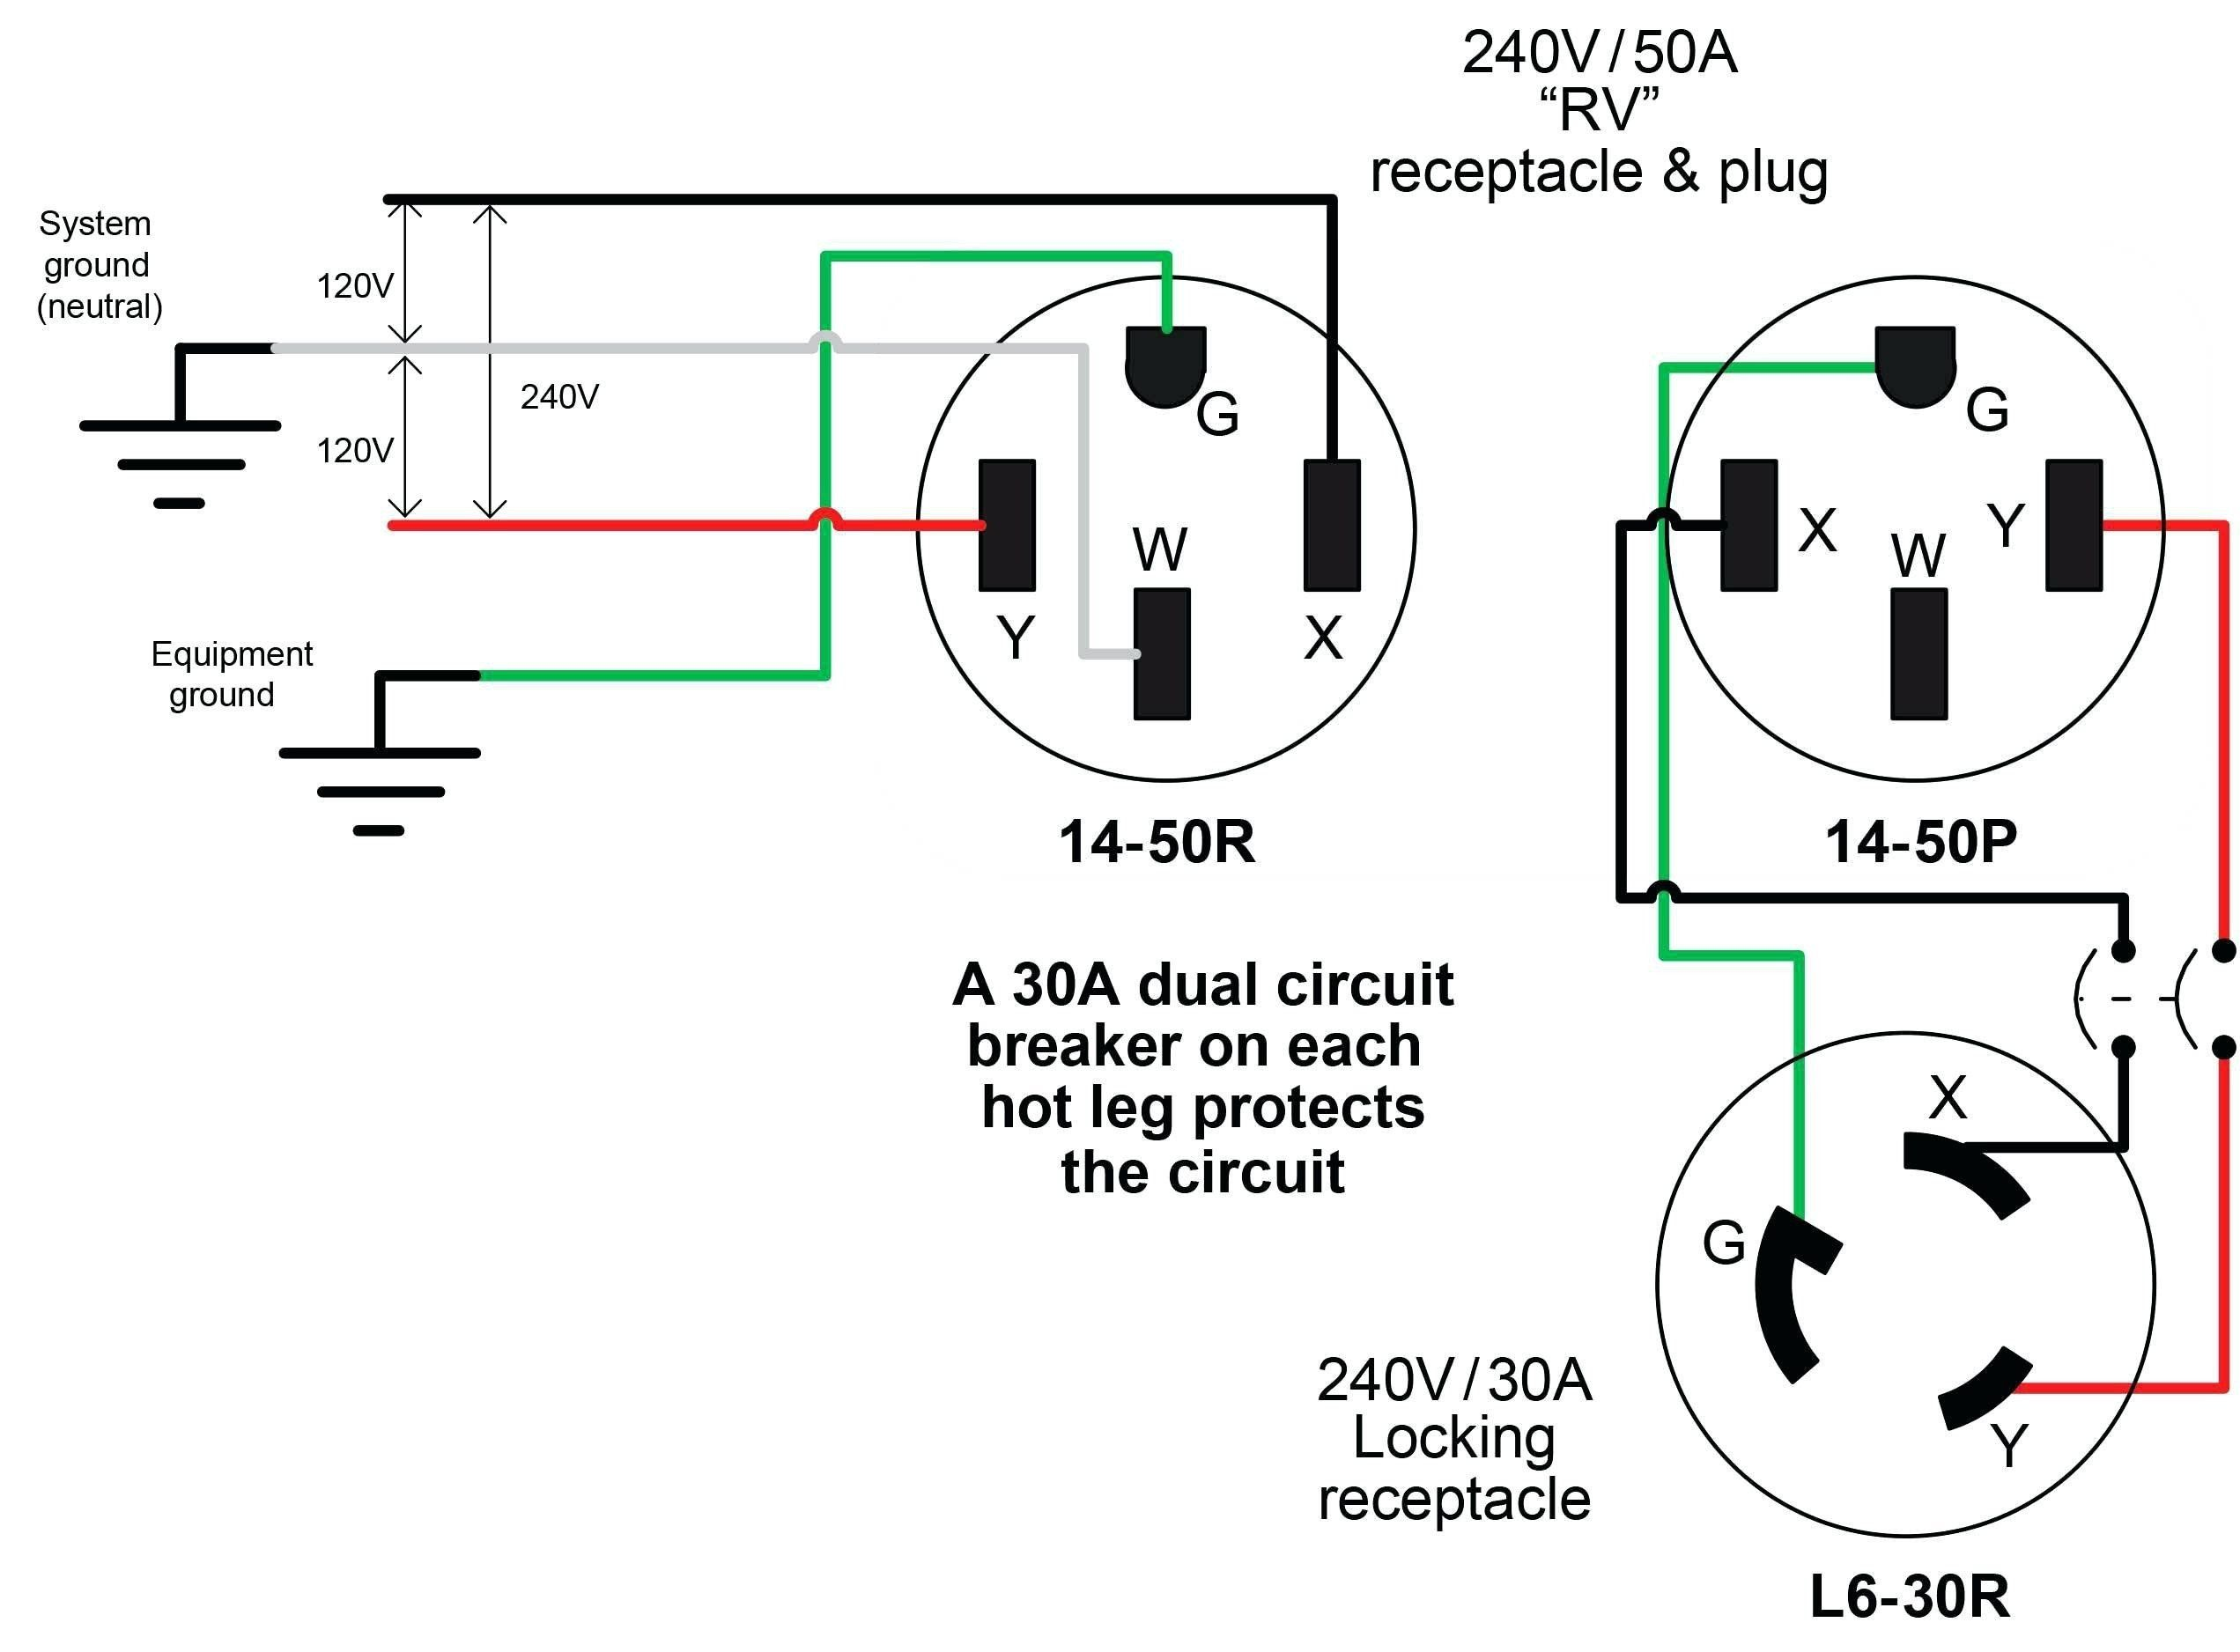 club car wiring key switch diagram moreover science worksheets for wiring diagrams furthermore club car wiring key switch diagram [ 2543 x 1876 Pixel ]